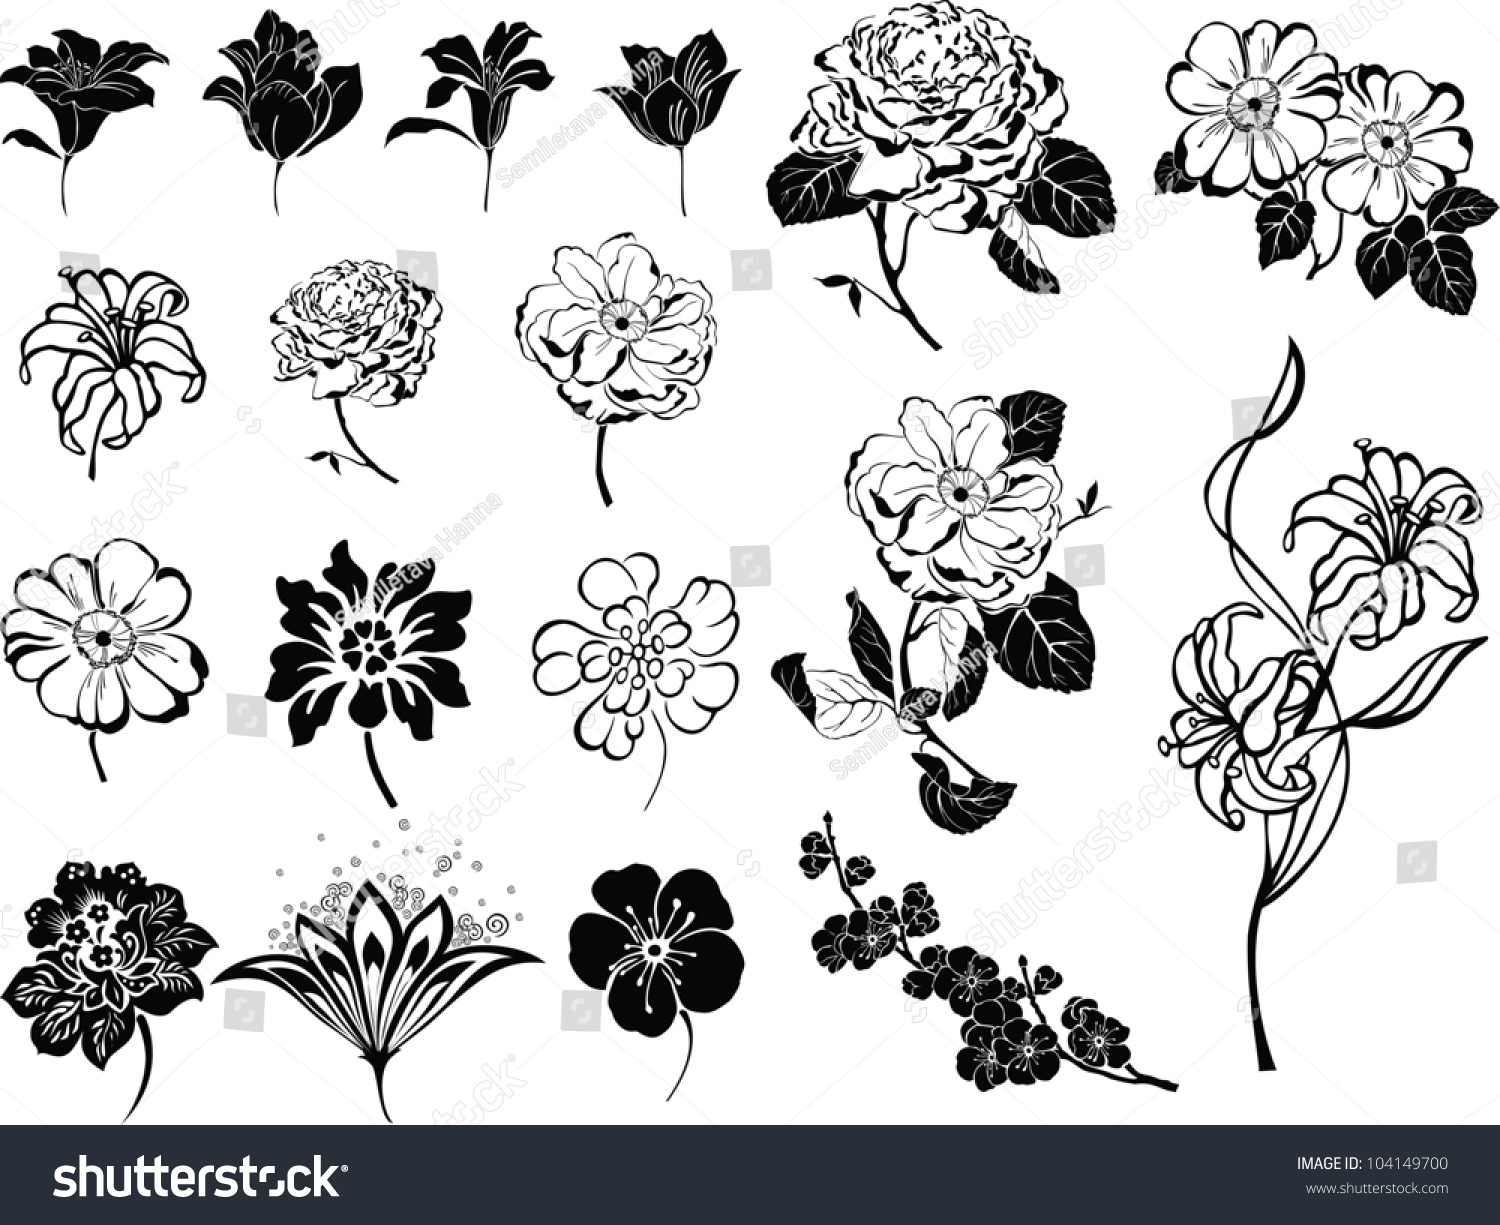 Set Black Flower Design Elements Isolated Stock Illustration Shut